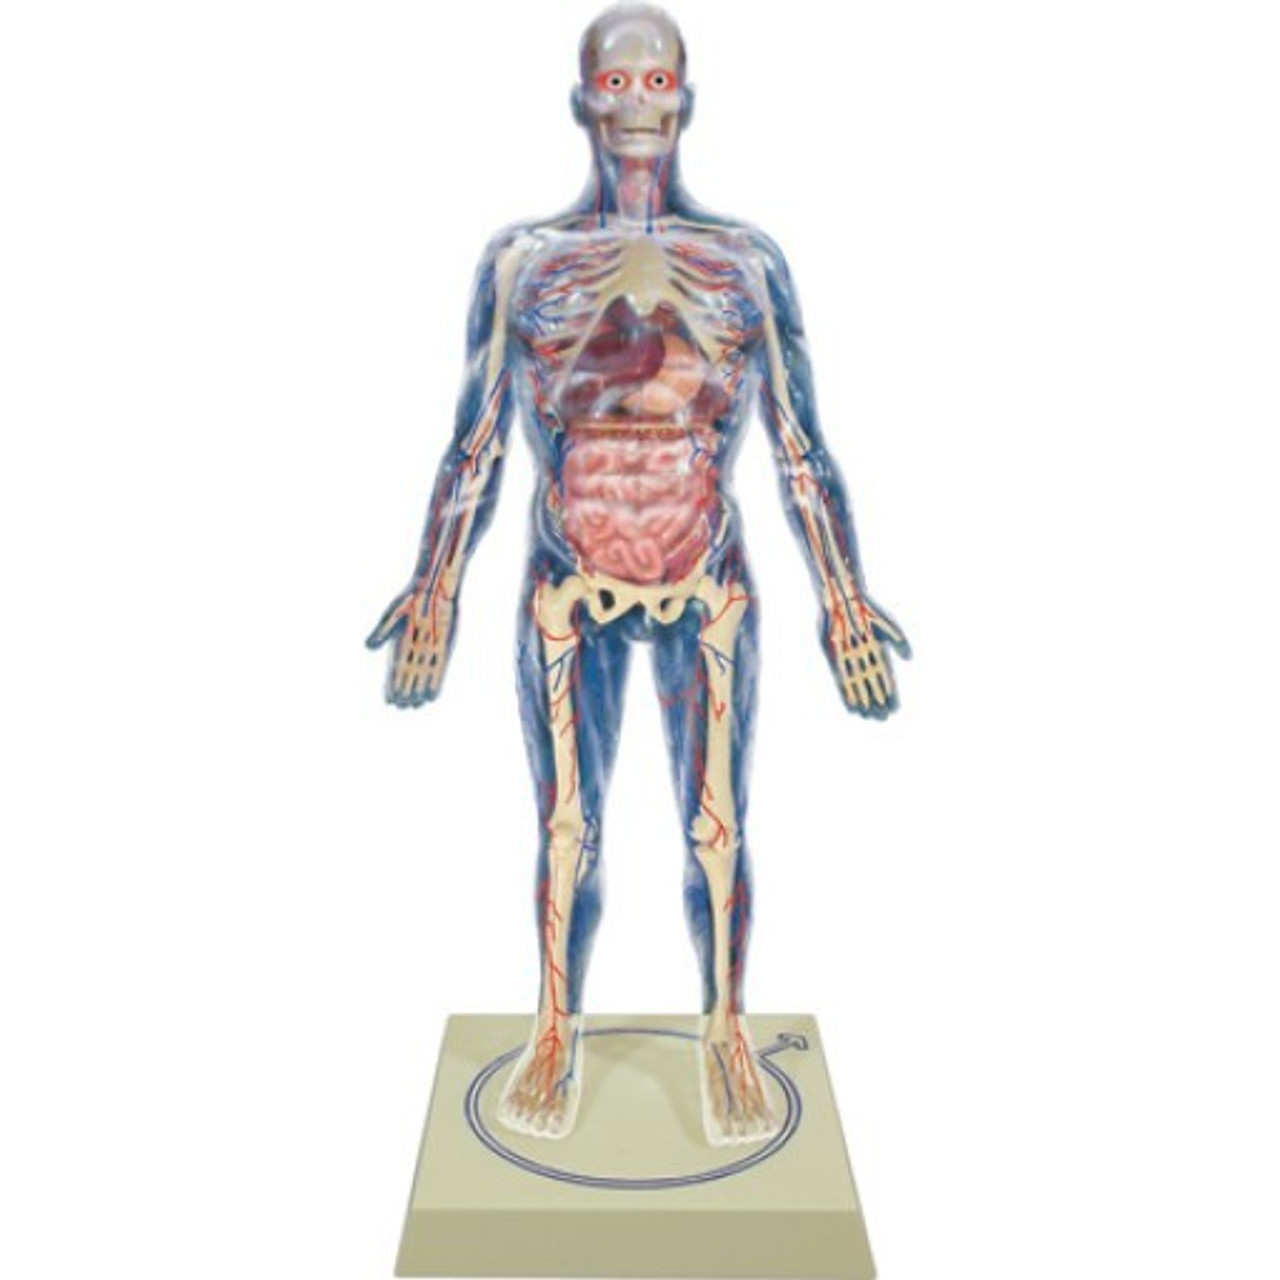 Science Study of Anatomy and Human Body Parts